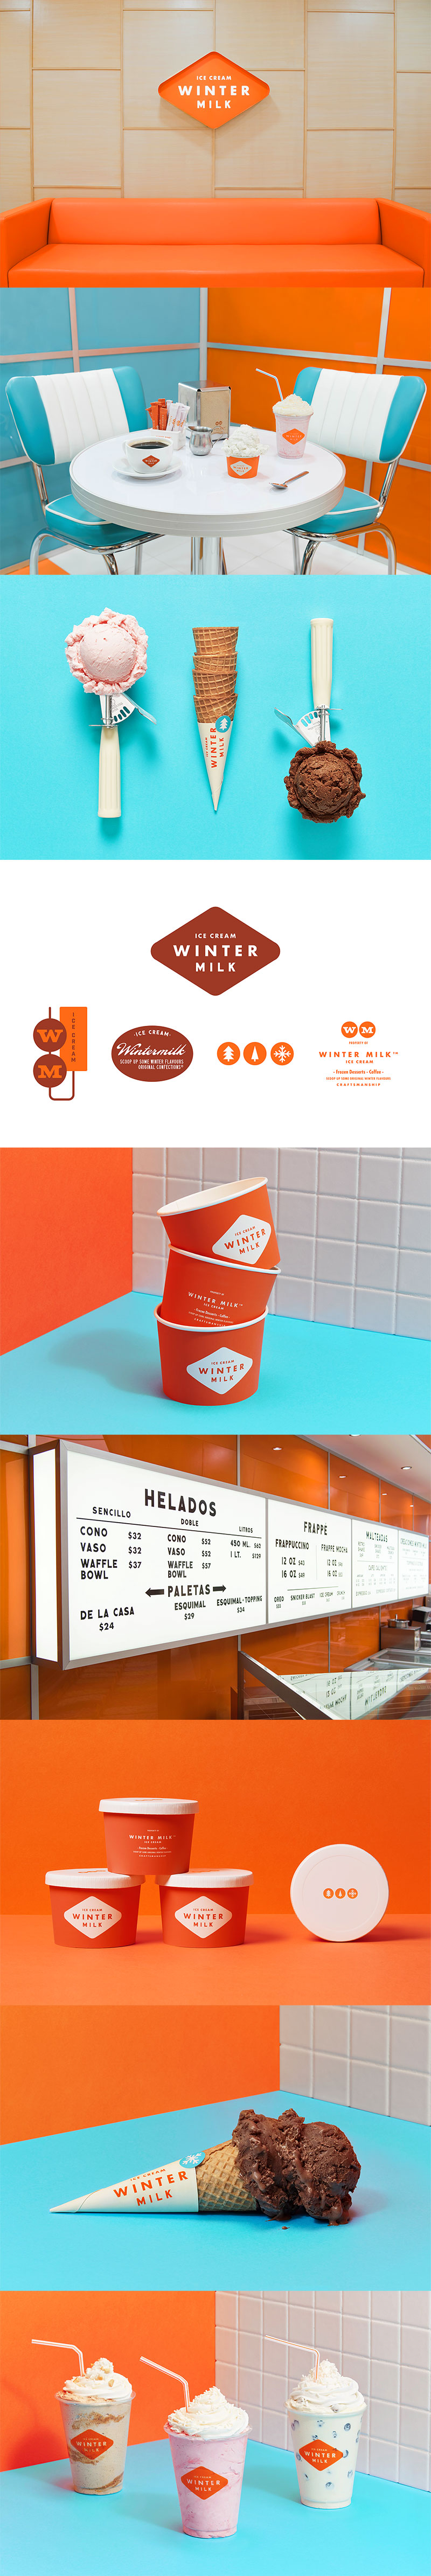 Ice Cream Packaging - Winter Milk by Anagrama Studio